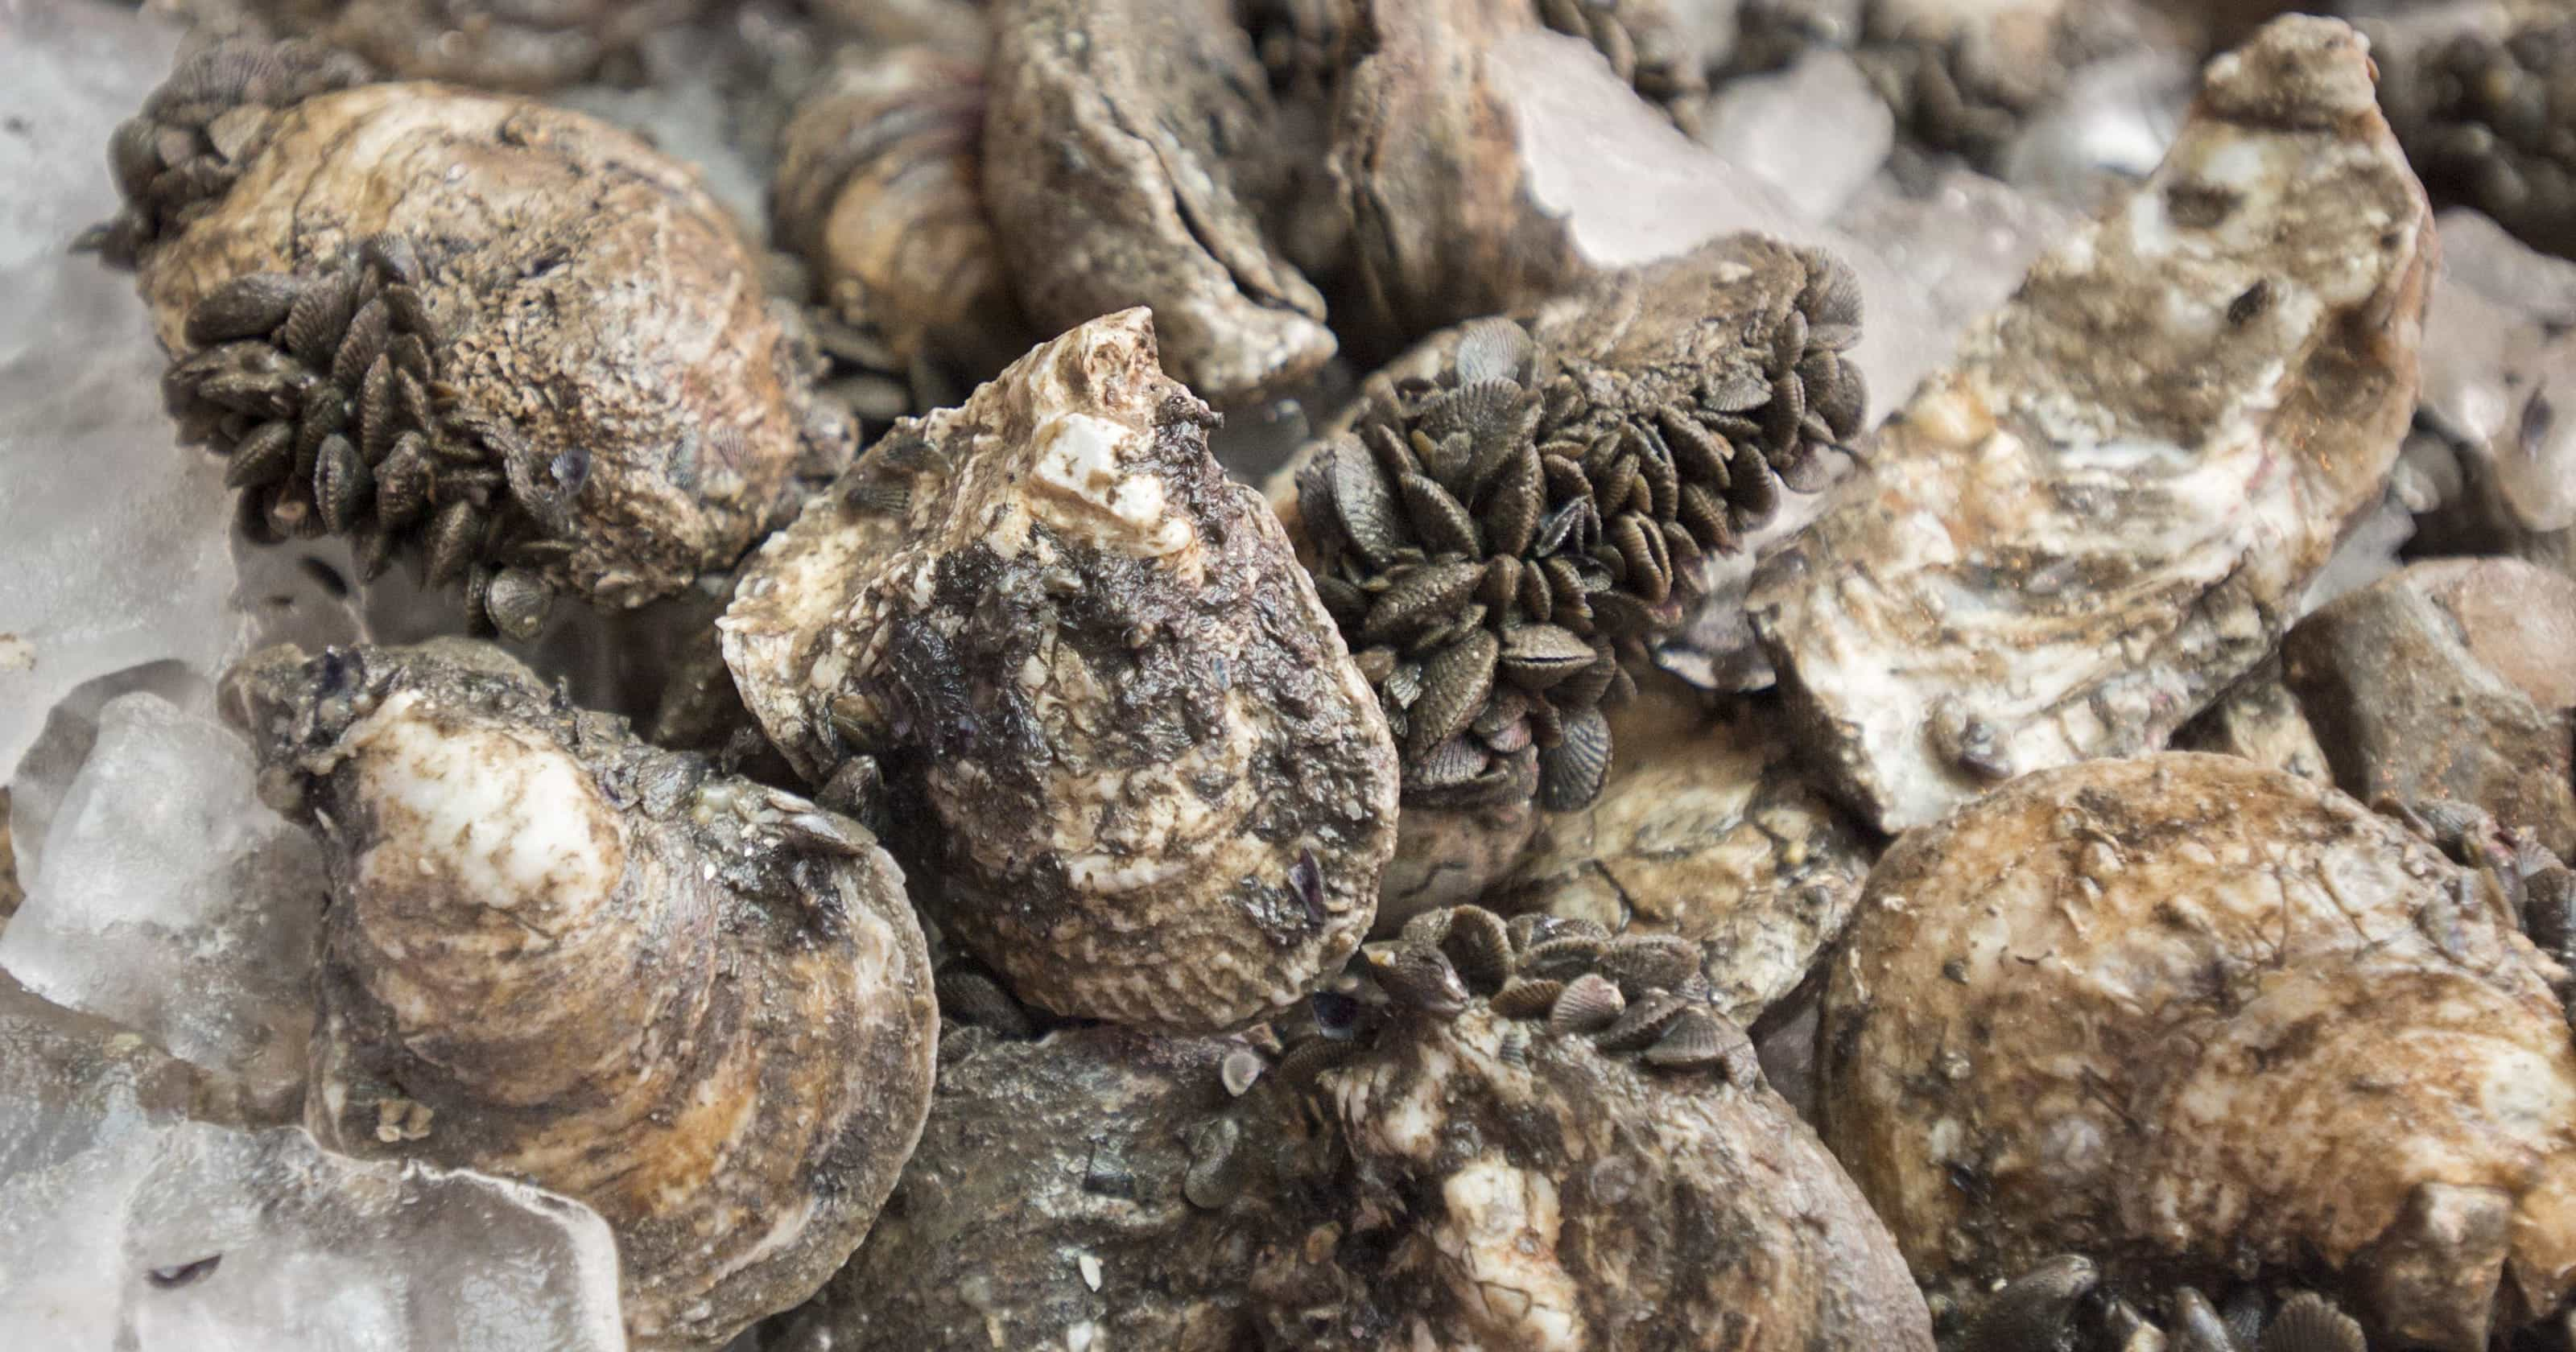 636443740059118324-Oyster-shell-recycling-005.jpg